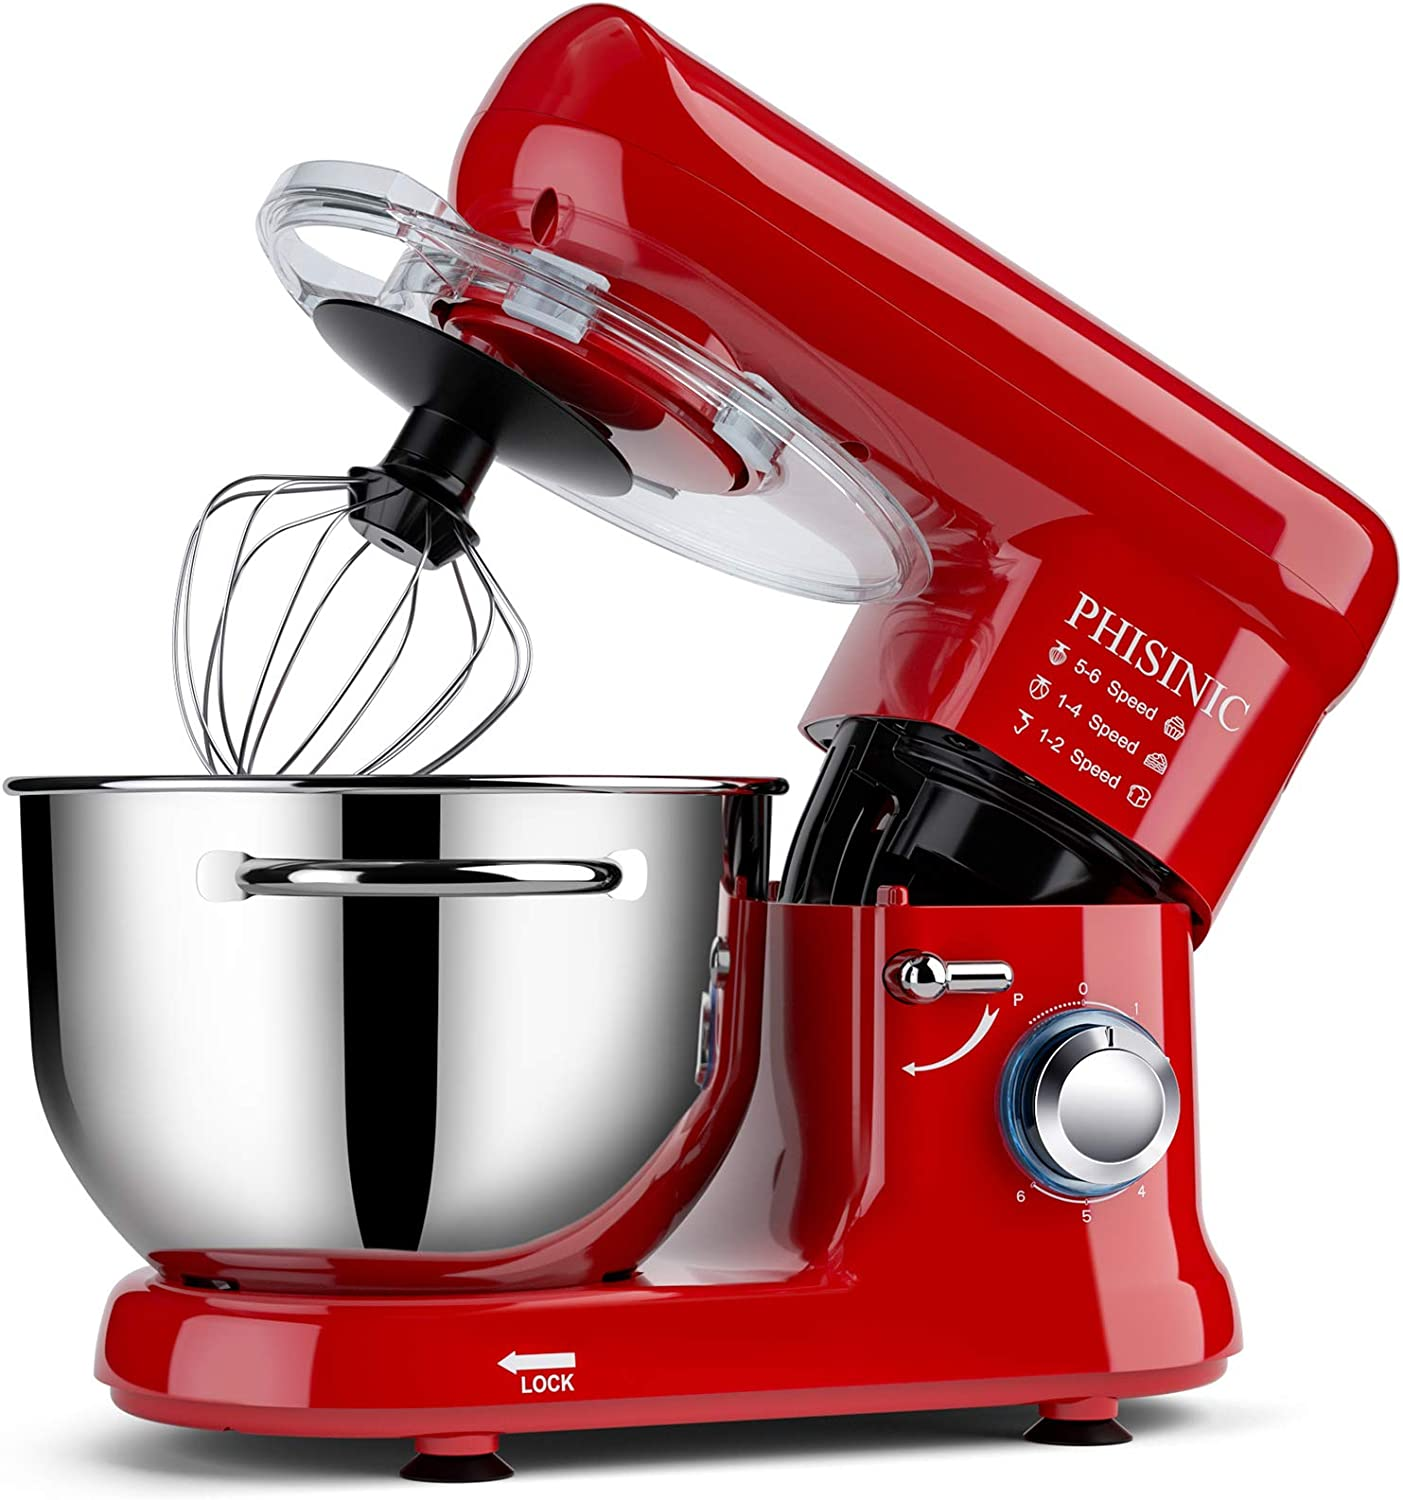 PHISINIC Stand Mixer, 5.8-QT 660W 6-Speed Tilt-Head Food Mixer, Kitchen Electric Mixer-Red